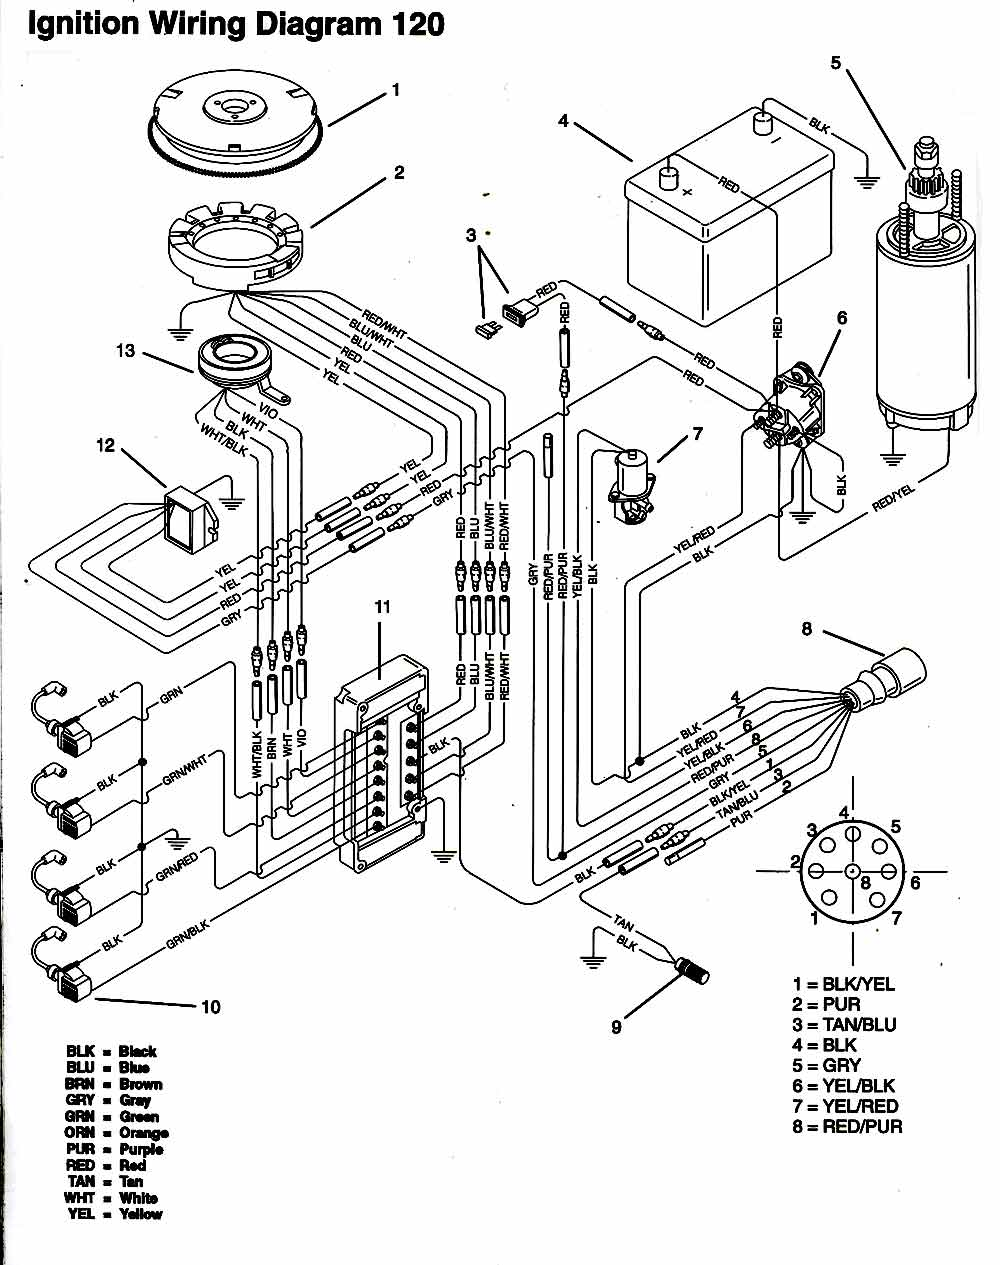 91 mercury topaz fuse box on 1995 mercury villager fuse box diagram